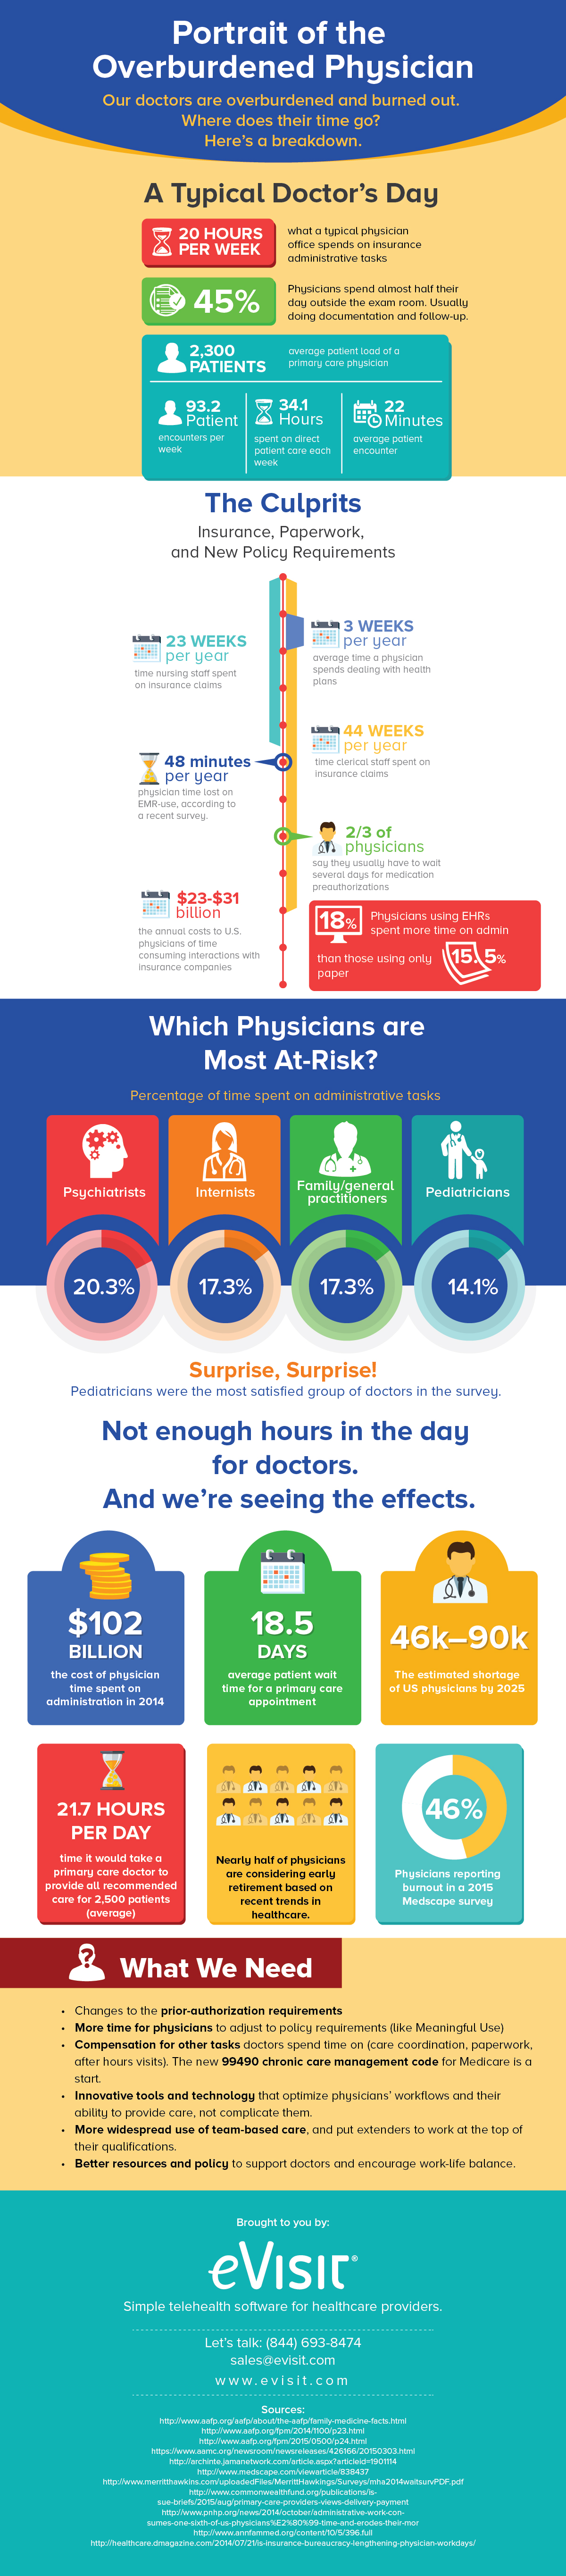 What Does the Average Physician's Day Look Like